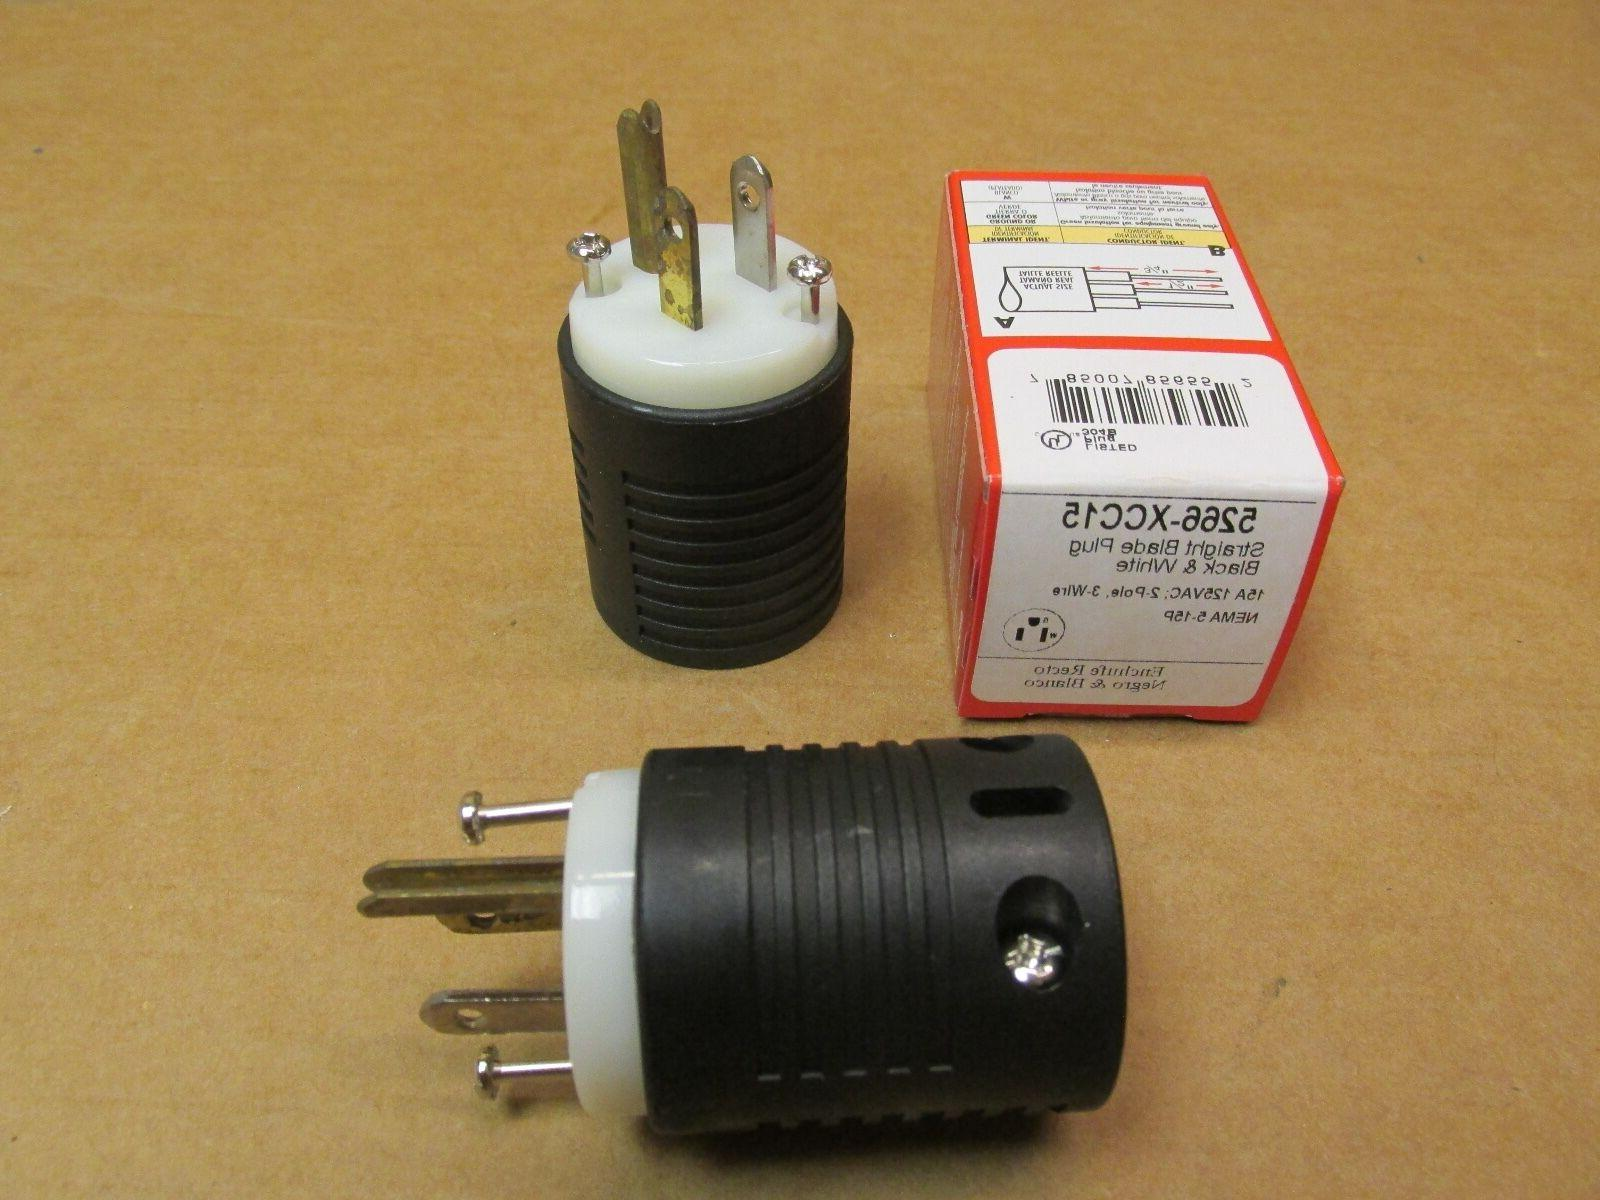 NEW EXTENSION CORD PLUG END HEAVY DUTY PASS SEYMOUR QUALITY